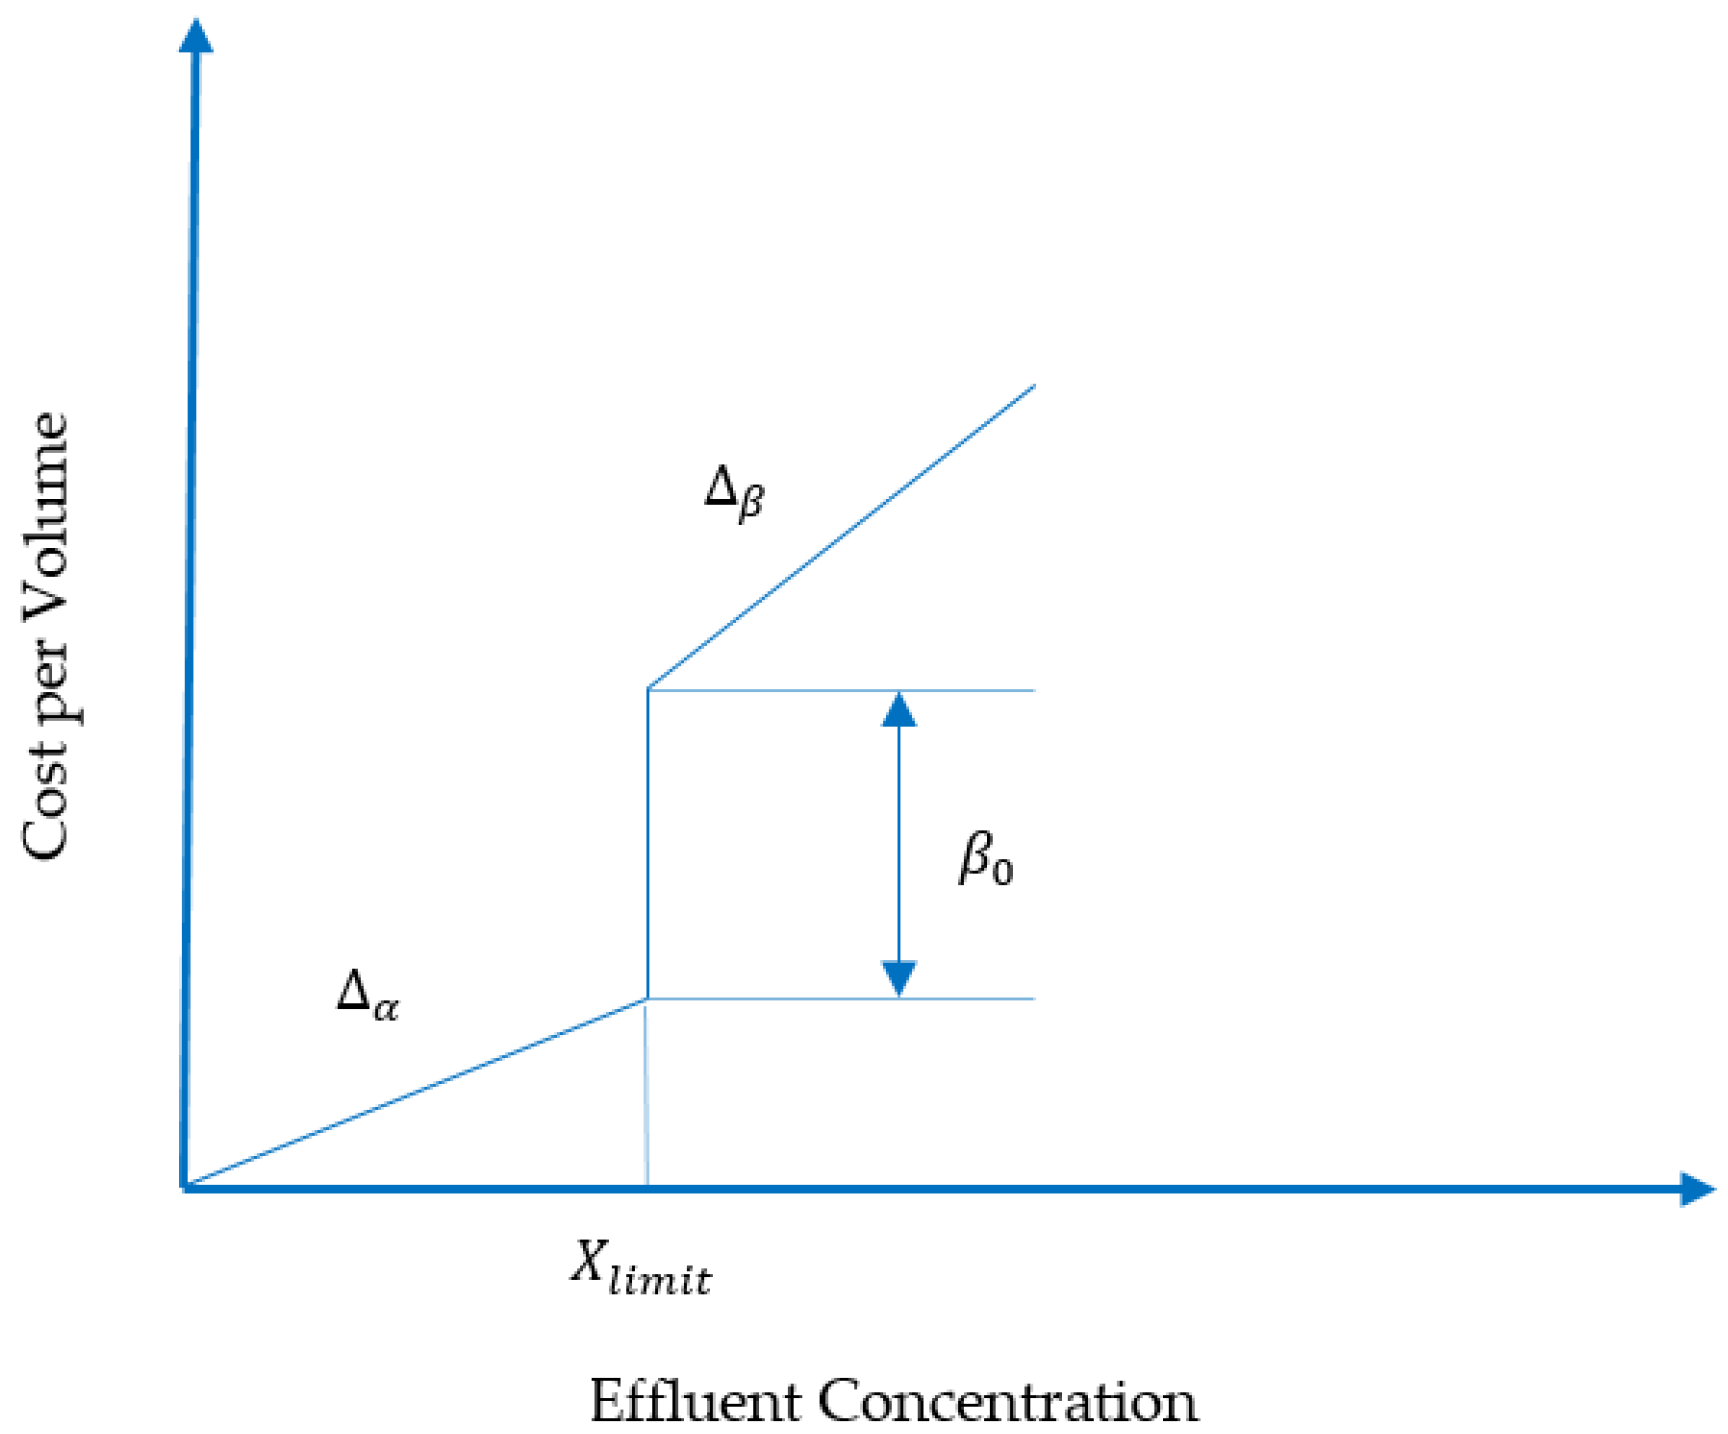 ammonia treatment in textile processing Textile wet processing is carried out either in batches, a continuous process, or a combination of the two another approach to alkali treatment of cotton is treatment with liquid ammonia (saravanan, 2005), with similar changes to fiber structure.